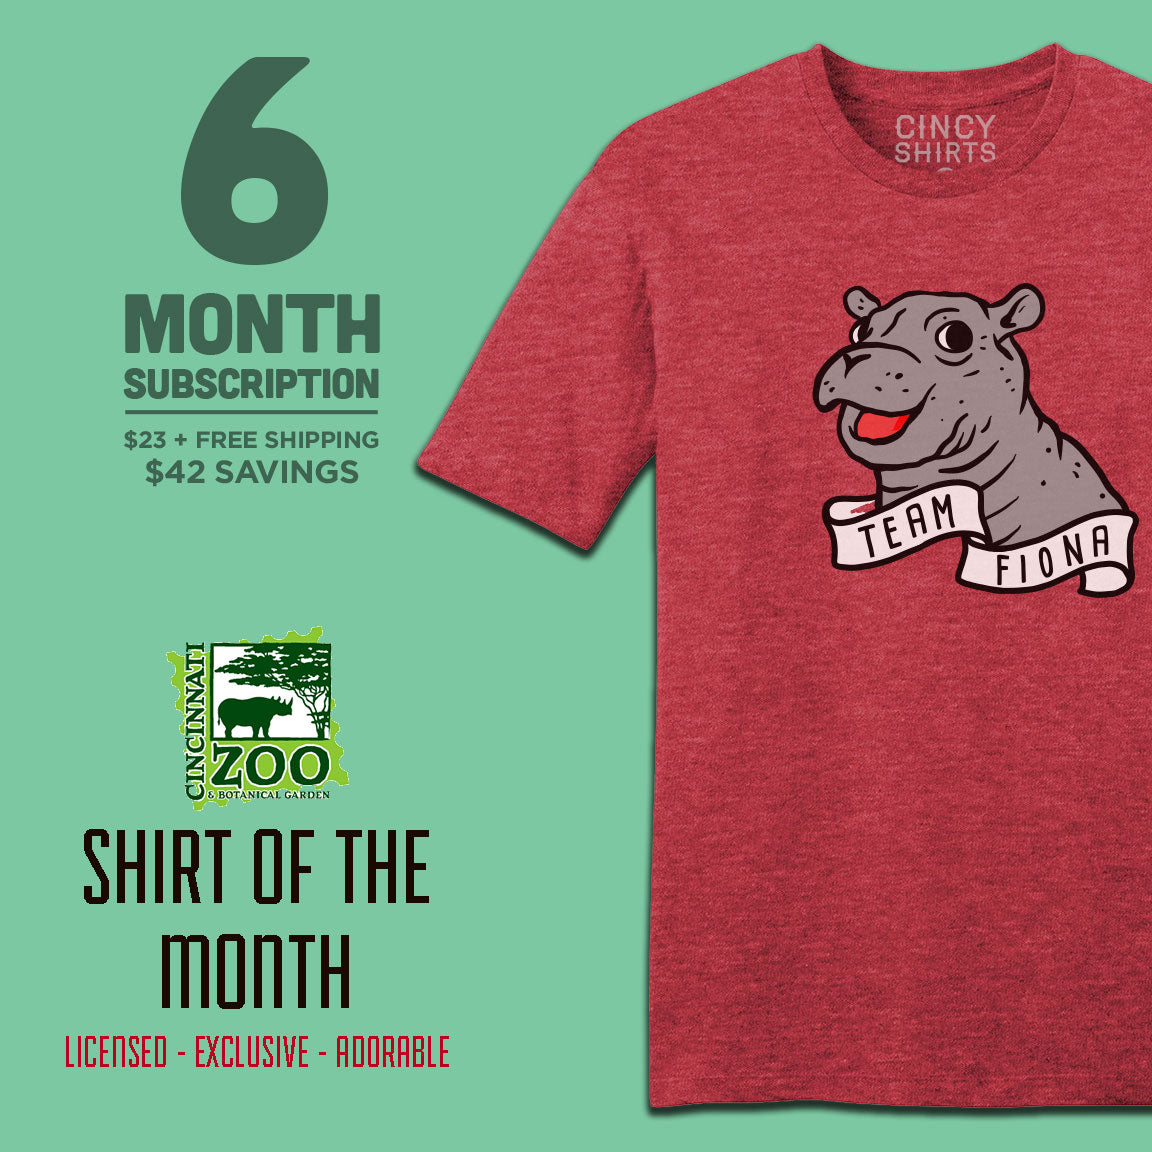 6-Month Cincinnati Zoo Shirt of the Month - Cincy Shirts